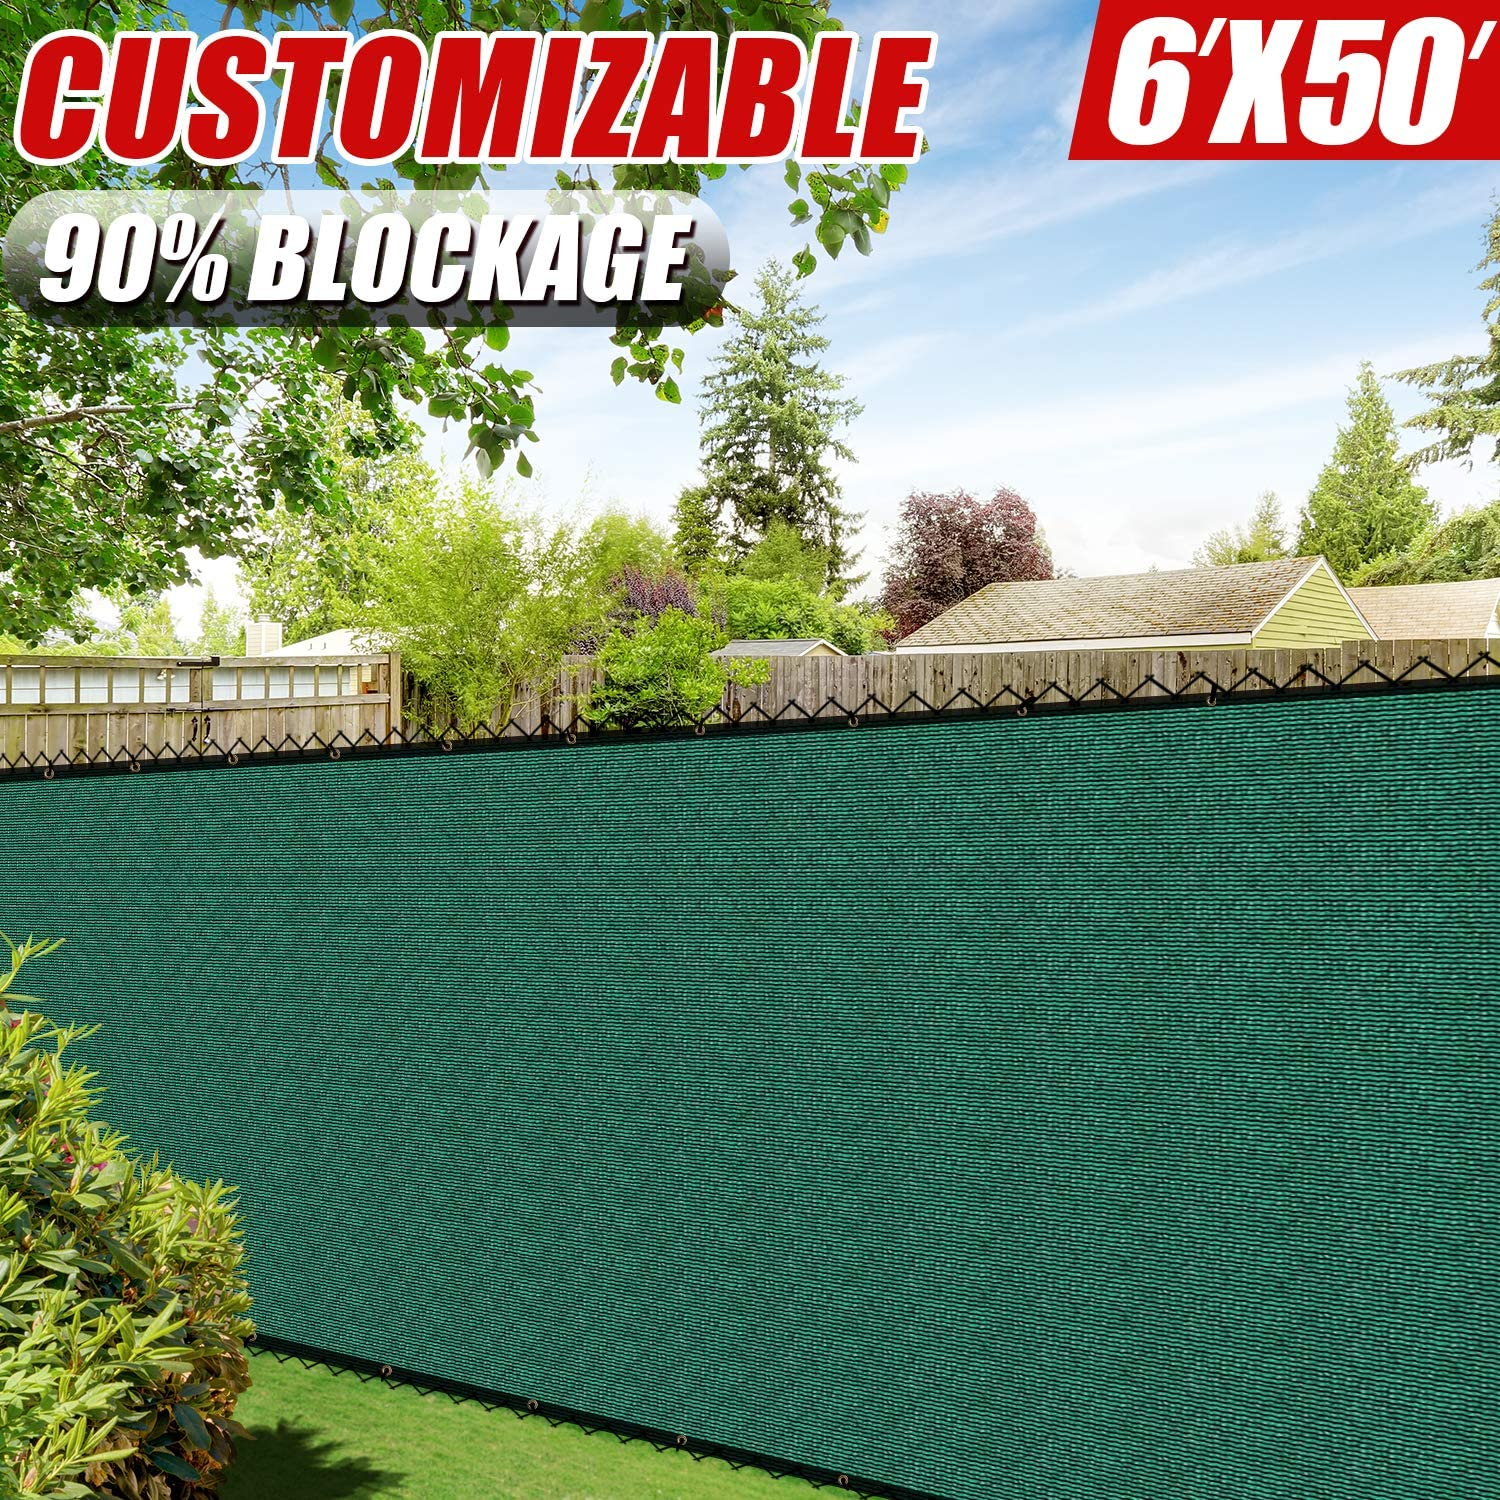 Amgo 6' x 50' Green Fence Privacy Screen Windscreen,with Bindings & Grommets, Heavy Duty for Commercial and Residential, 90% Blockage, Cable Zip Ties Included, (Available for Custom Sizes)